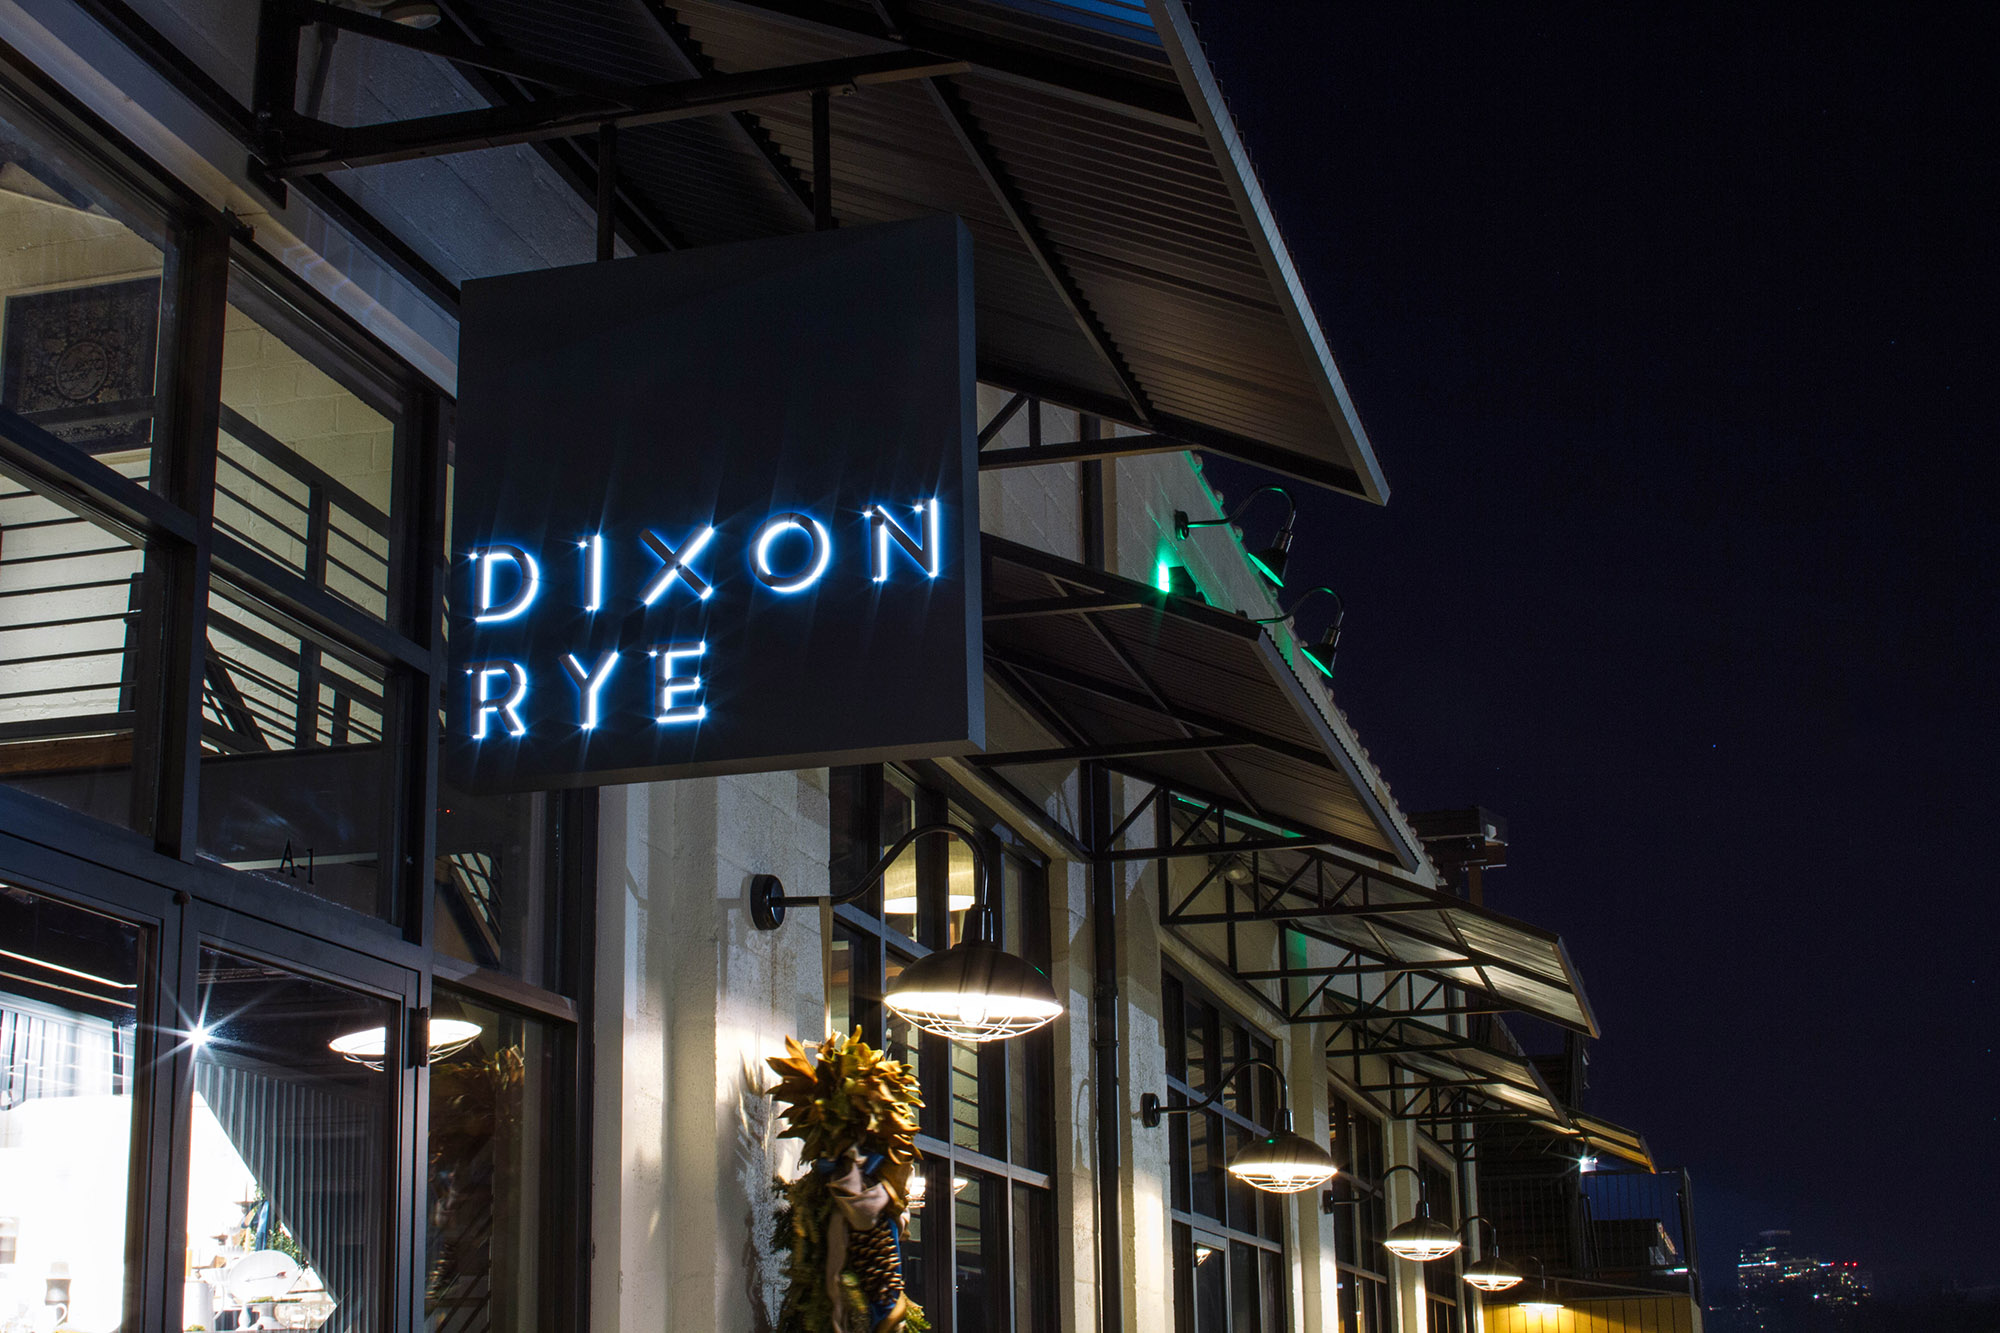 Exterior of Dixon Rye's retail store showing the raised letters of the logo design with white light illuminating the sign behind them, and the night skyline of Atlanta in the background.